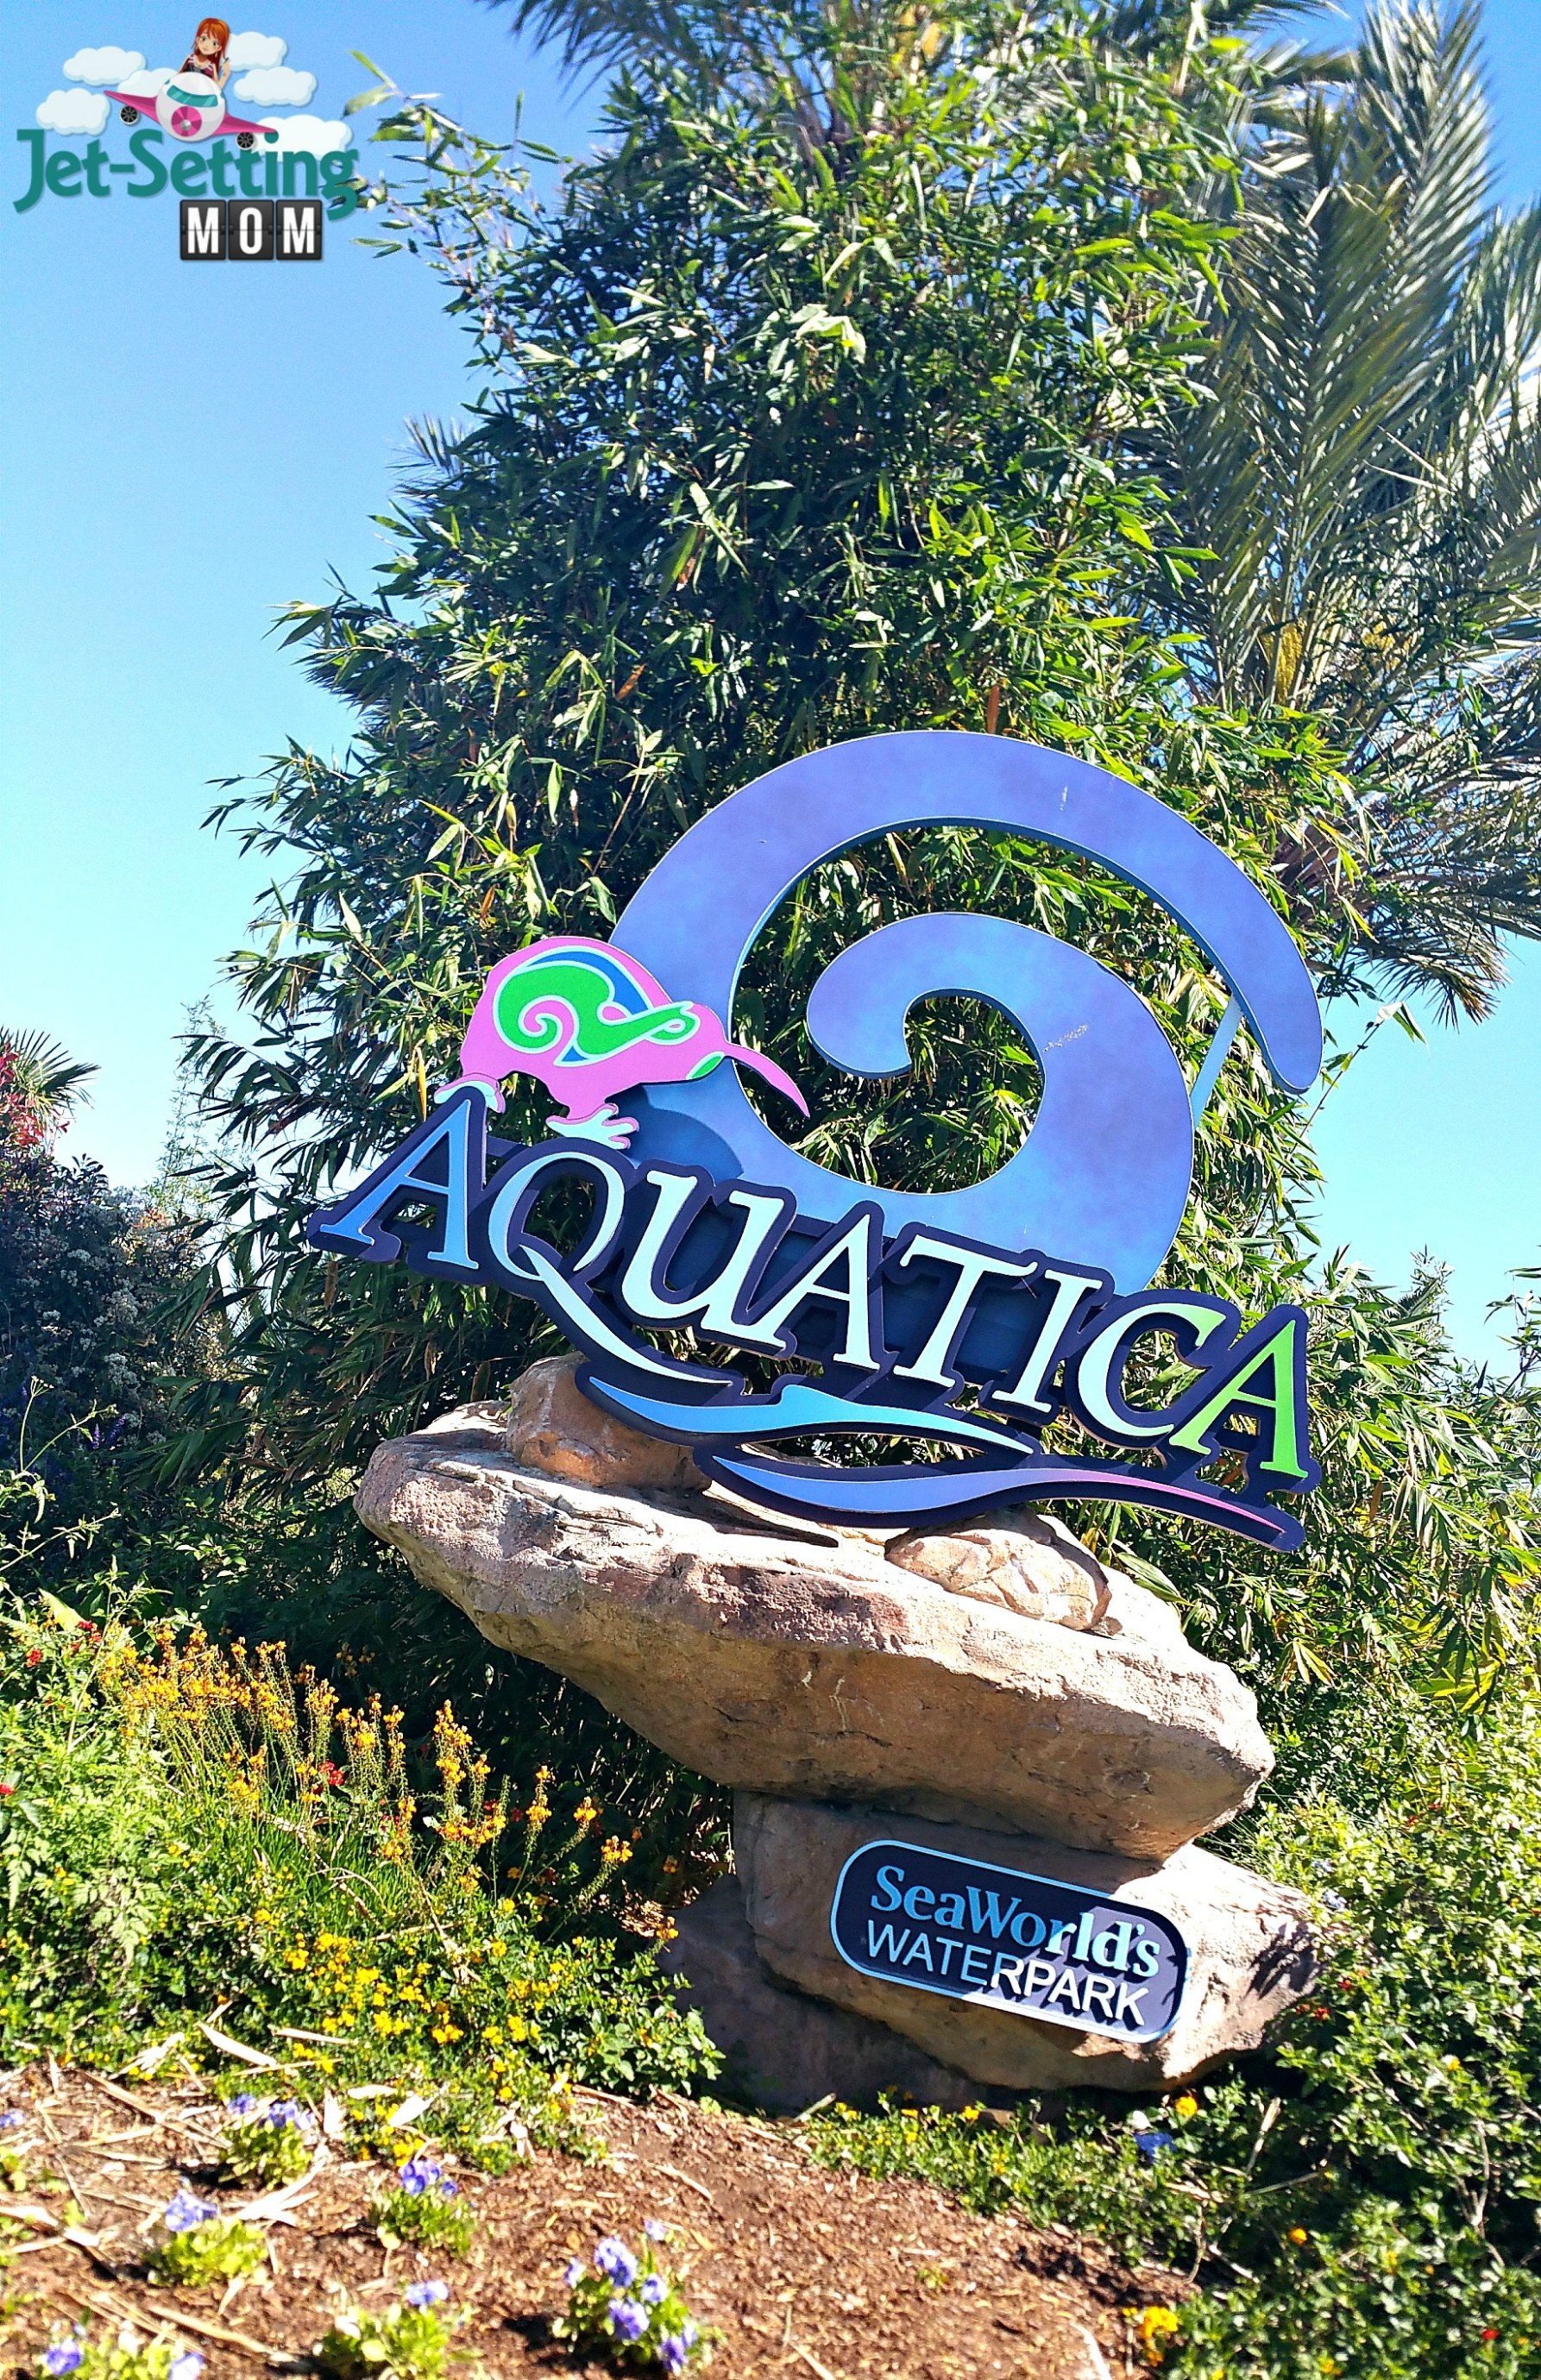 Aquatica at SeaWorld TX